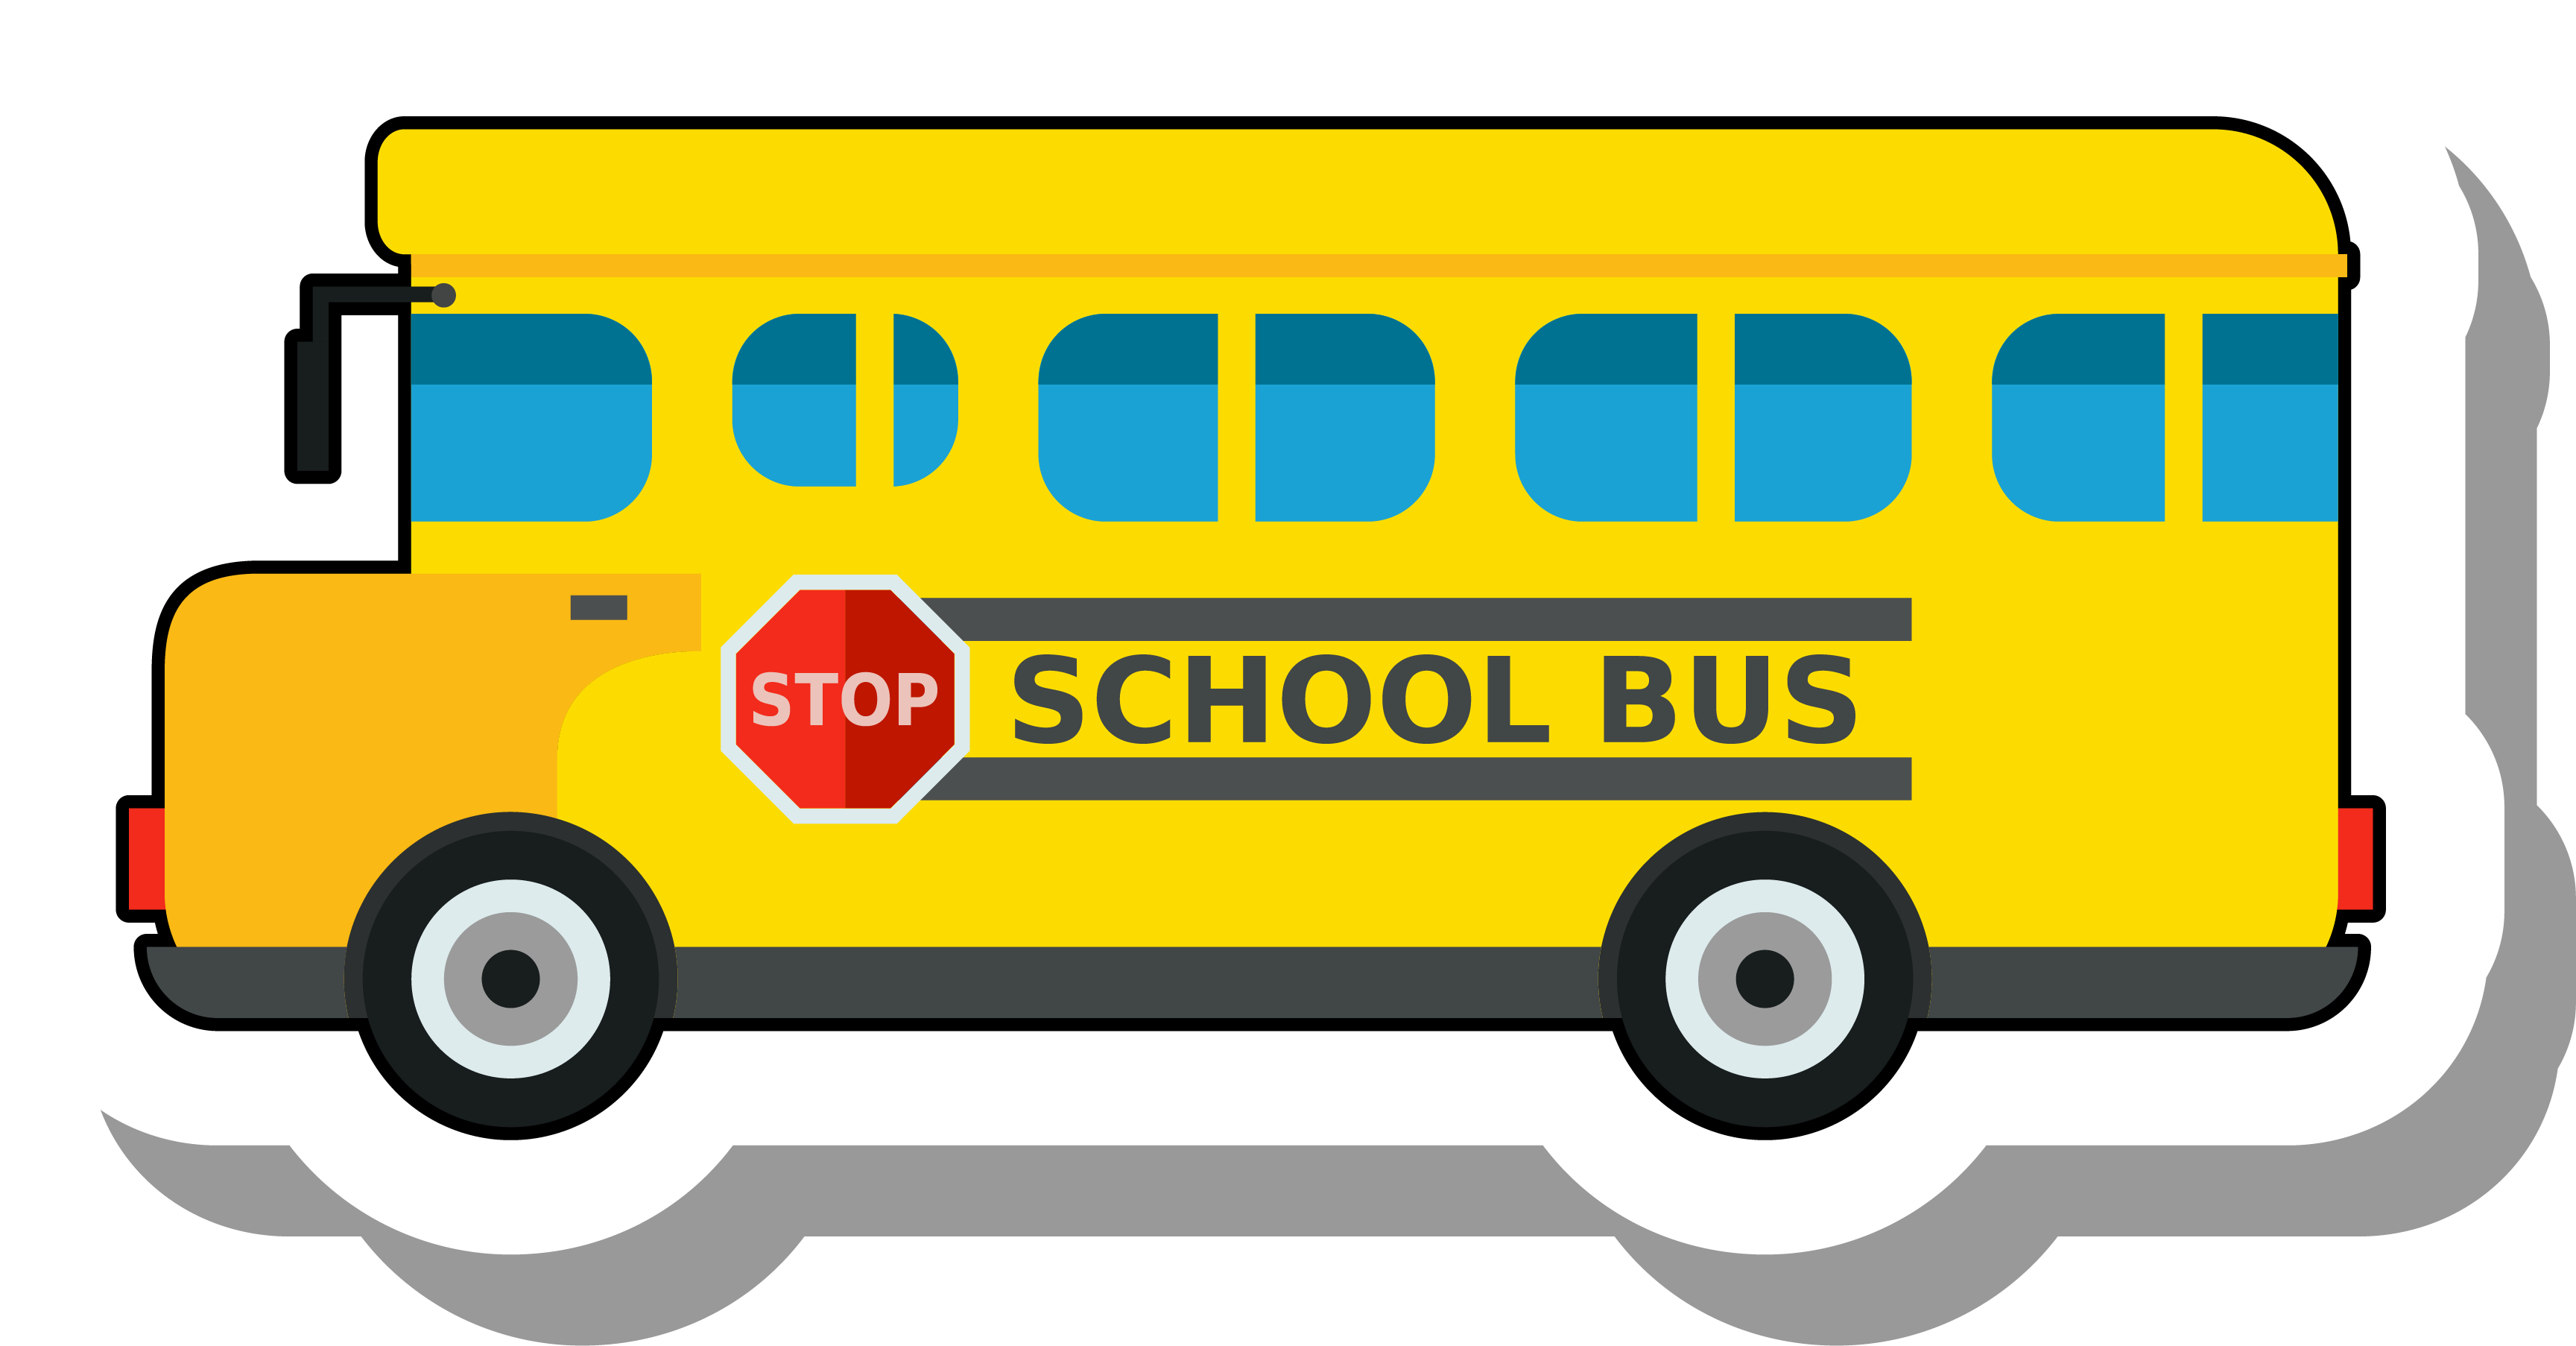 Back of school bus clipart clipart download School bus Clip art - Golden bus school sticker 3457*1806 transprent ... clipart download